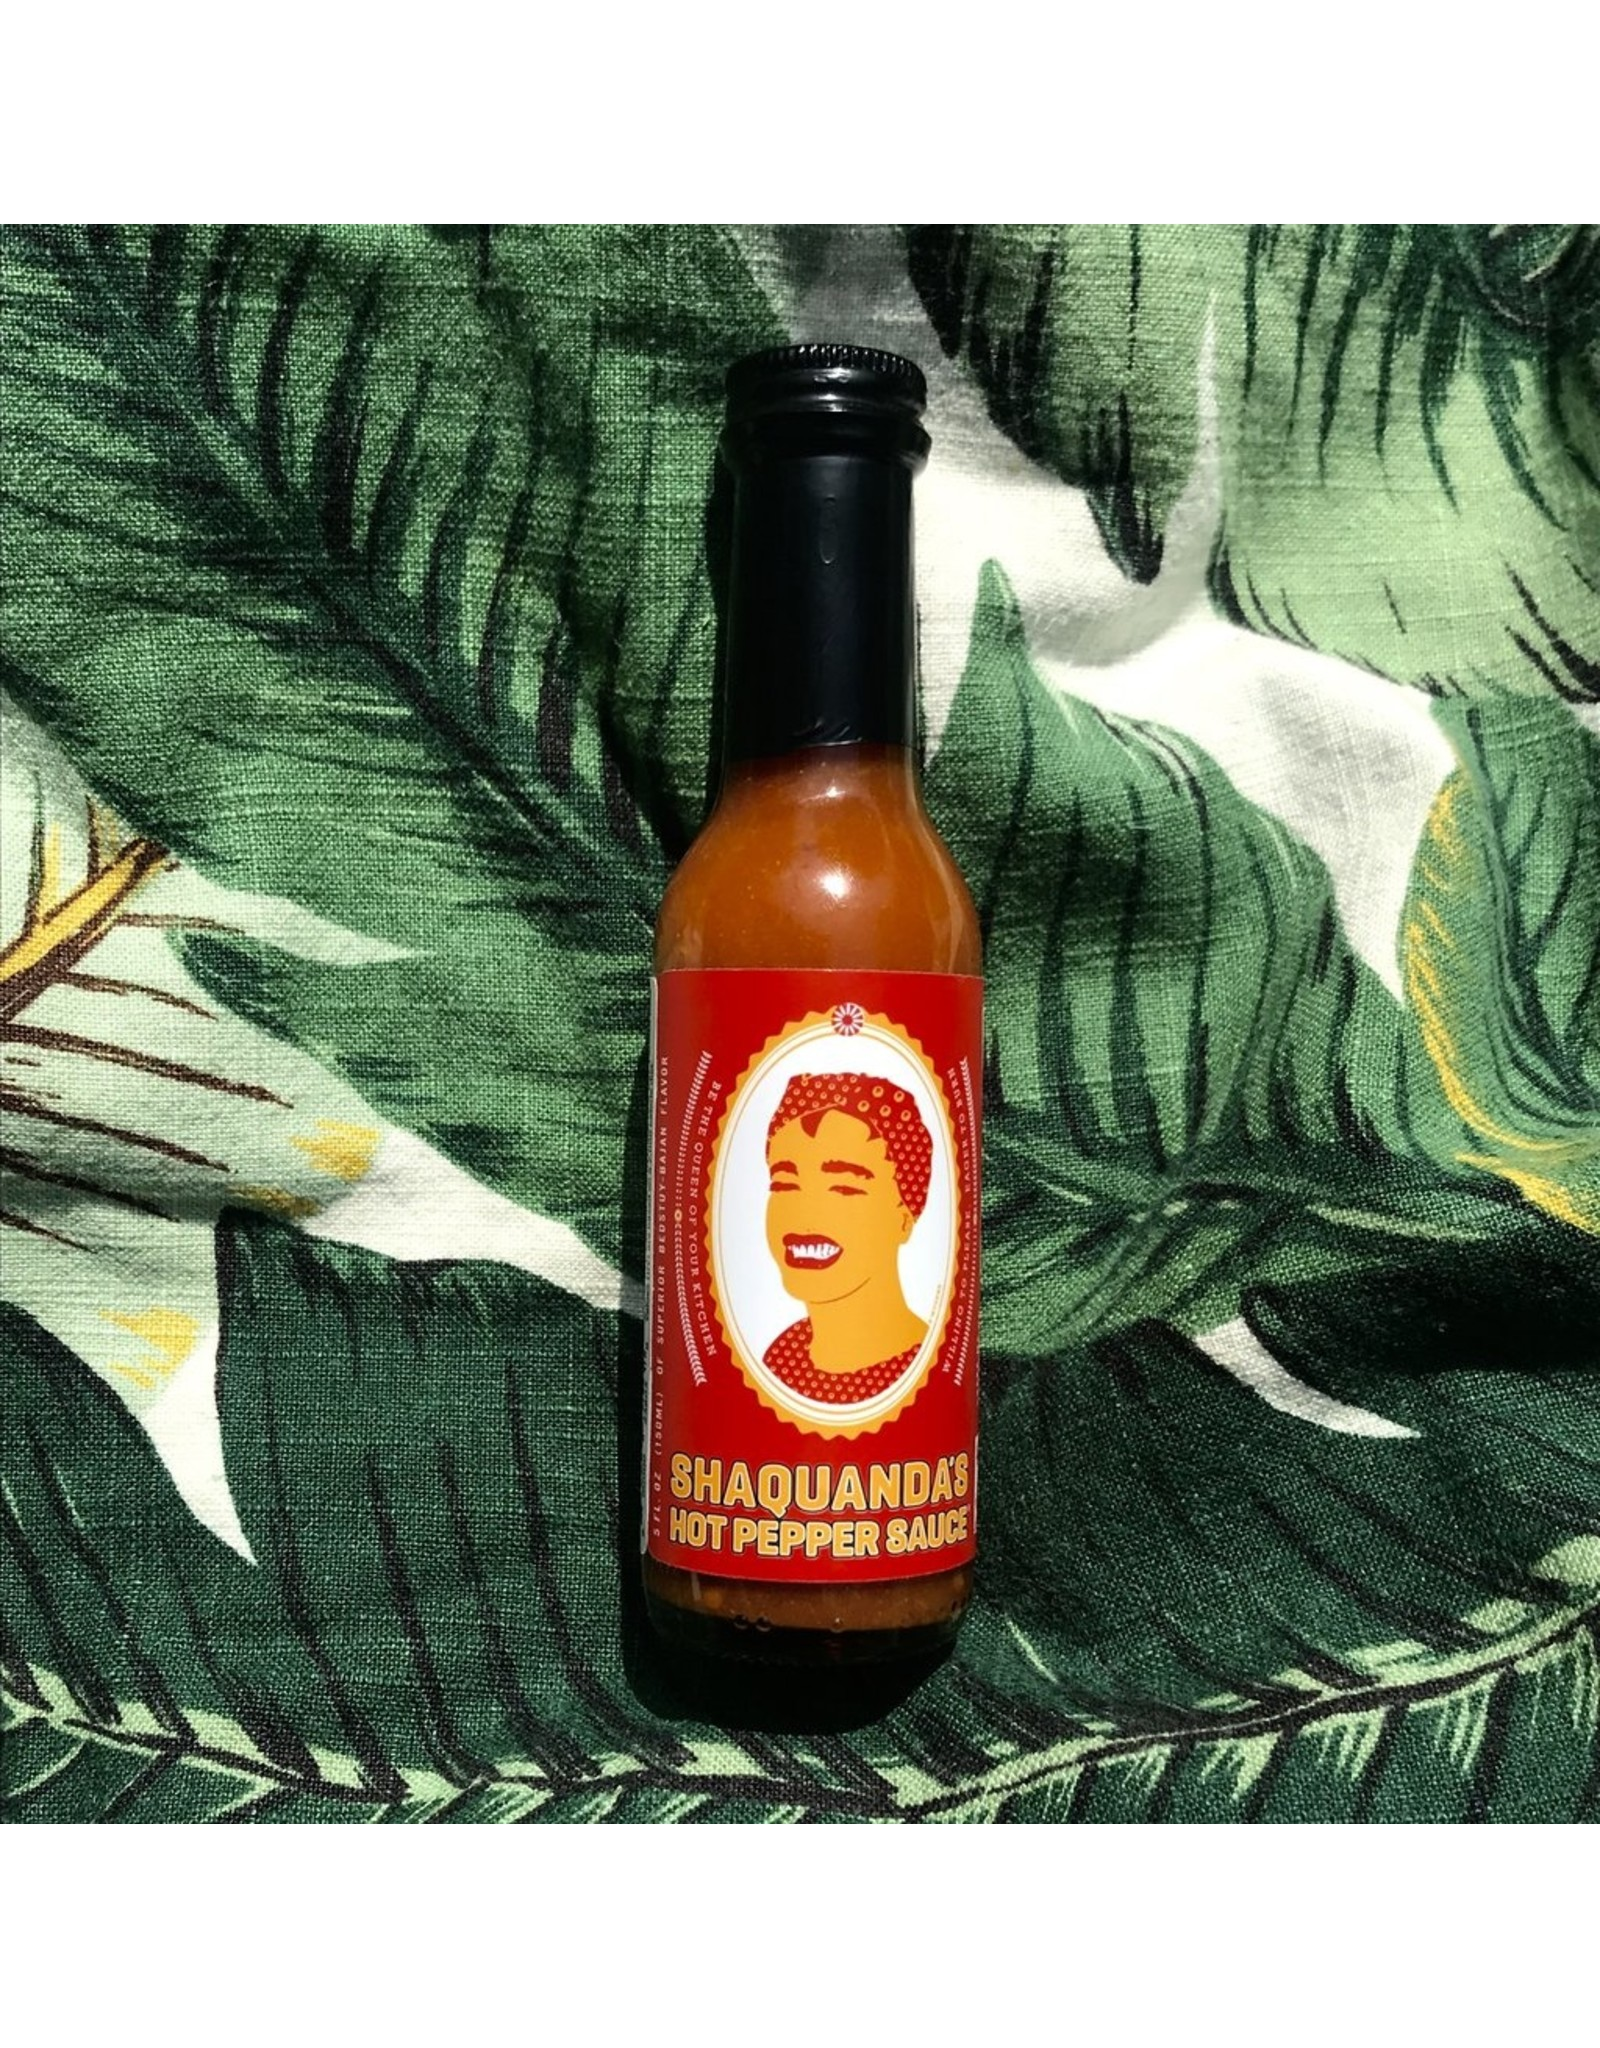 Shaquanda's Hot Pepper Sauce